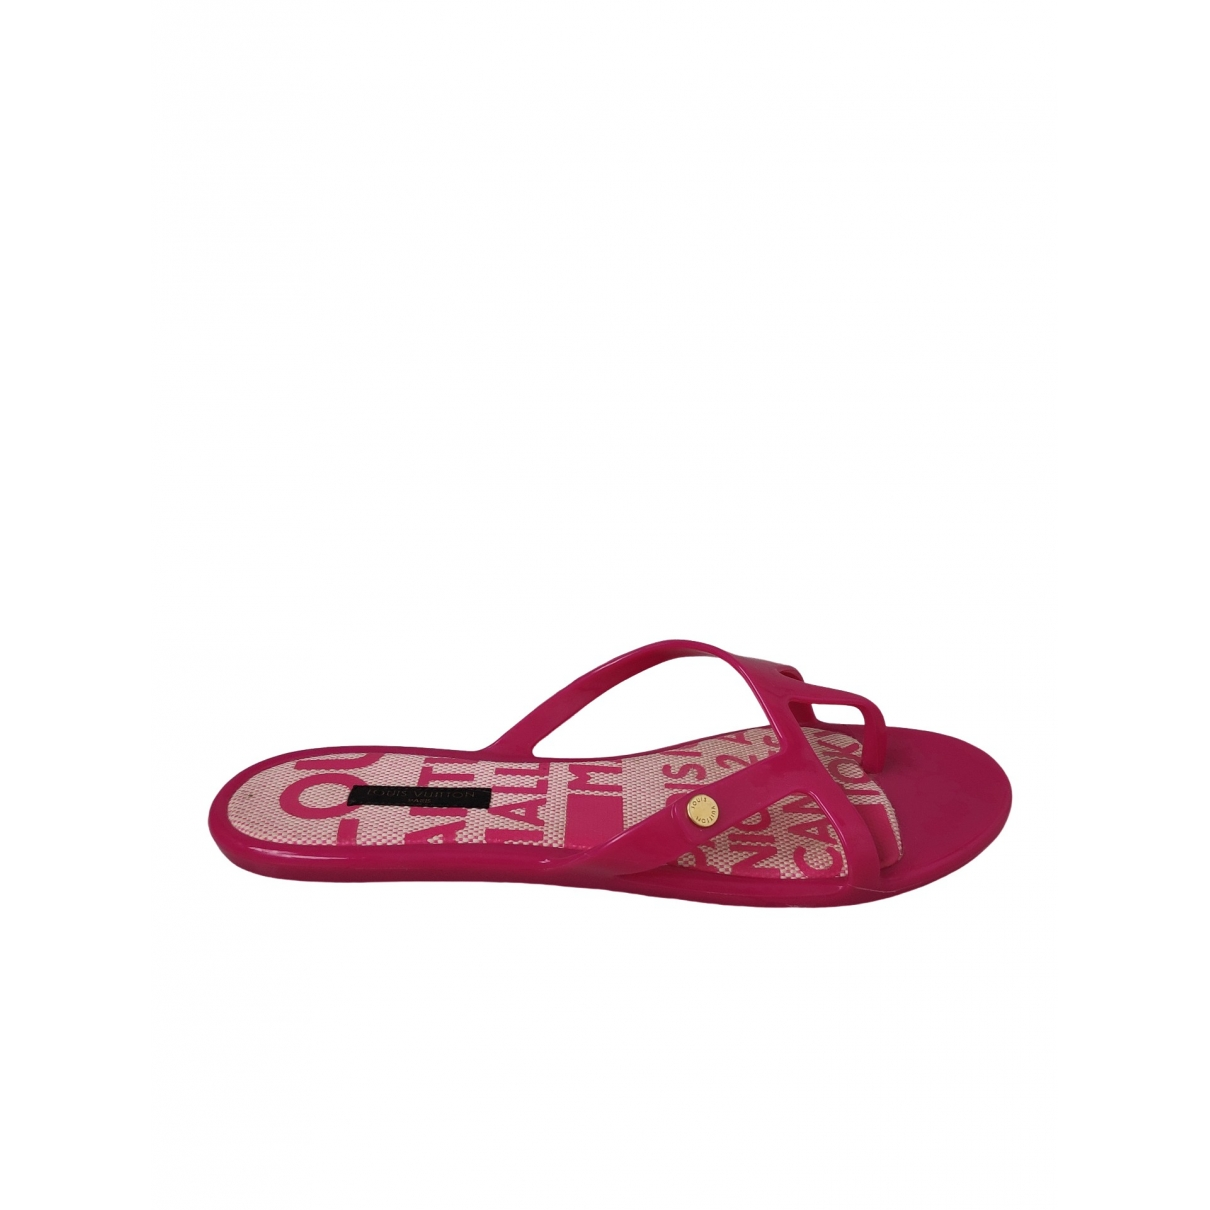 Louis Vuitton \N Sandalen in  Rosa Kautschuk